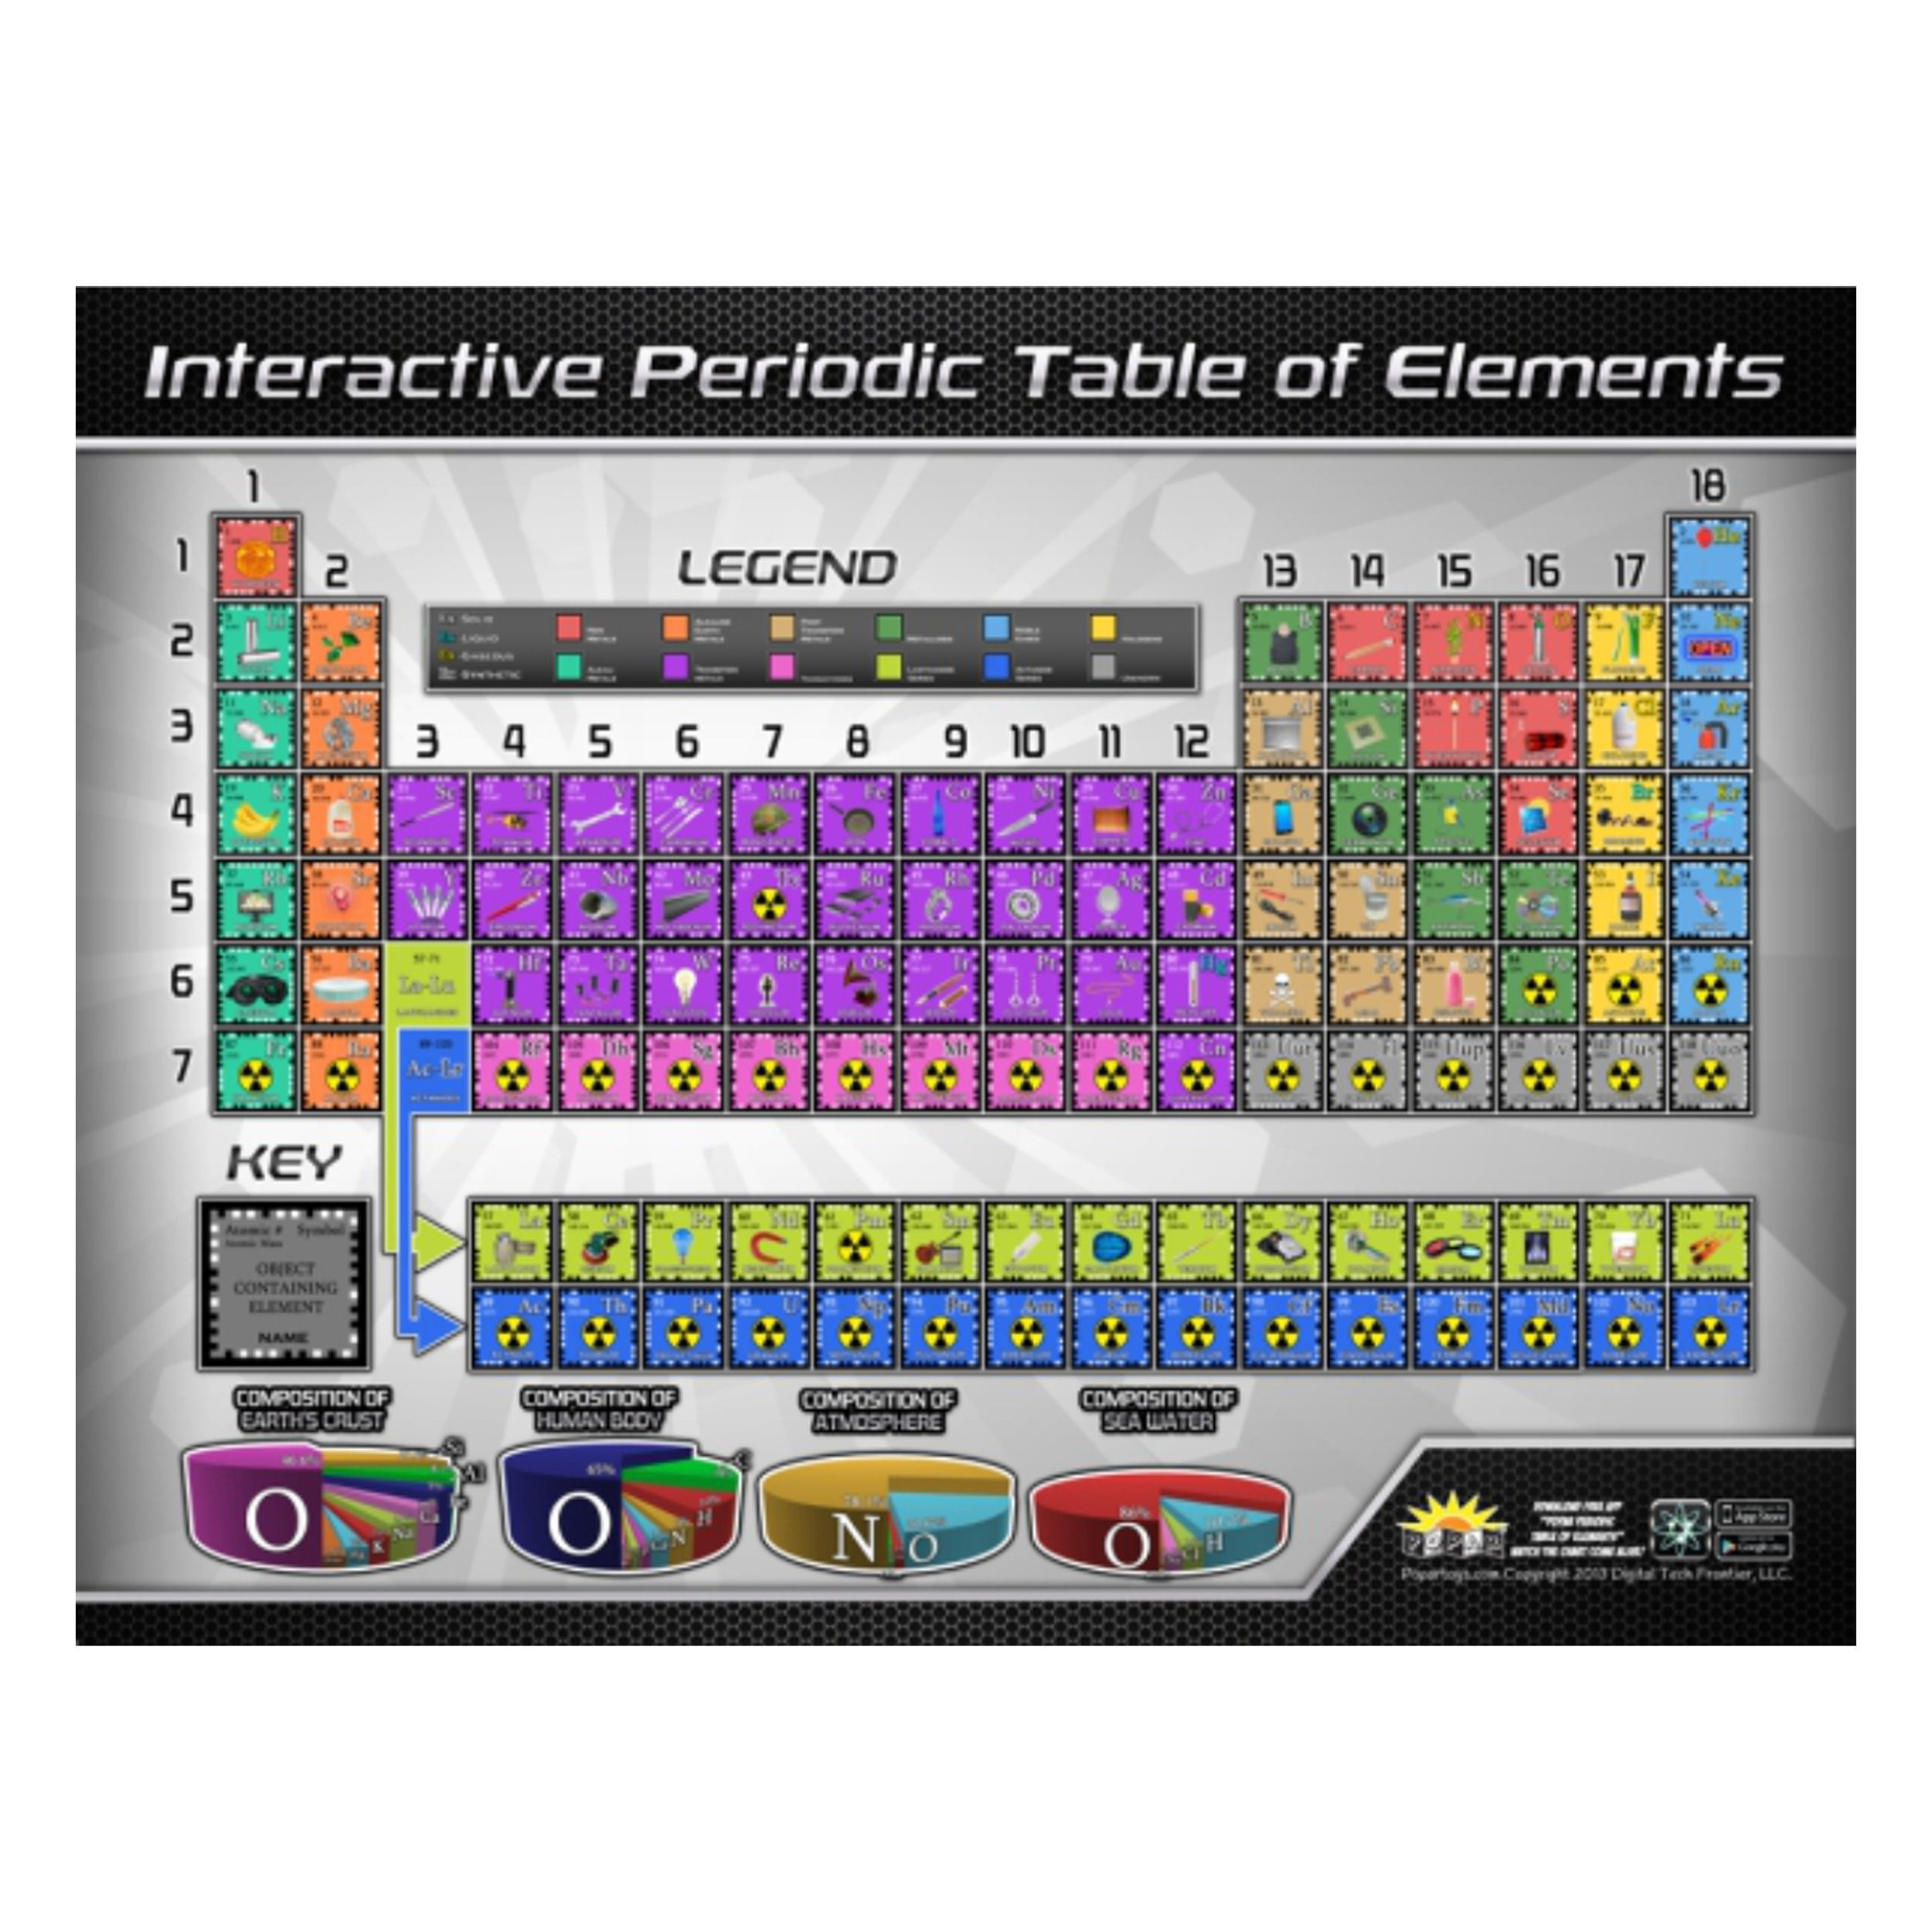 Periodic table of elements 32 inch wall chart with app learning periodic table of elements 32 inch wall chart with app urtaz Gallery